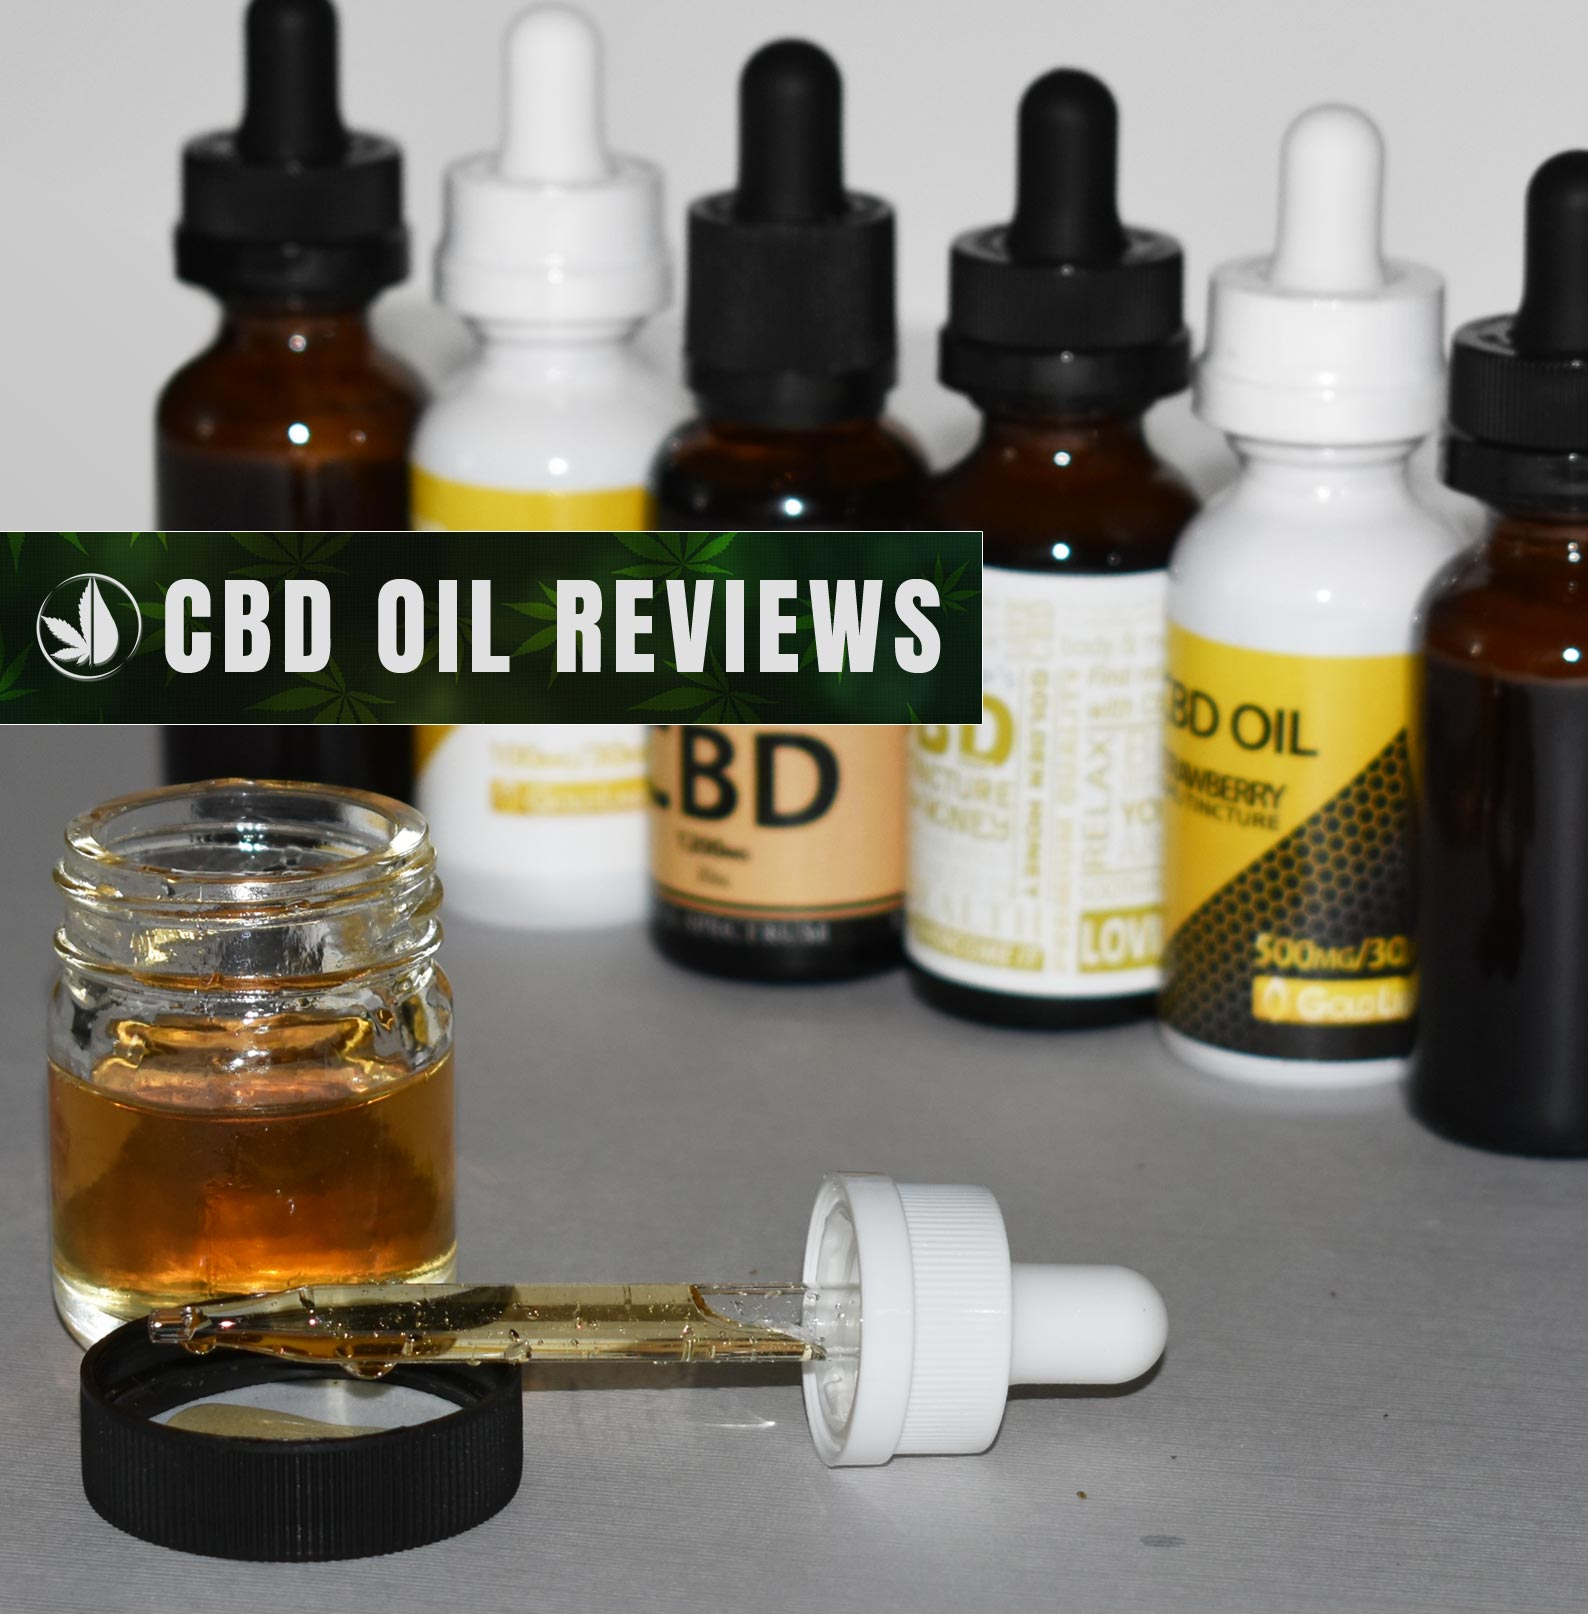 Reviews of CBD Oils, Vape Tinctures & Cannabidiol Oil for Pets